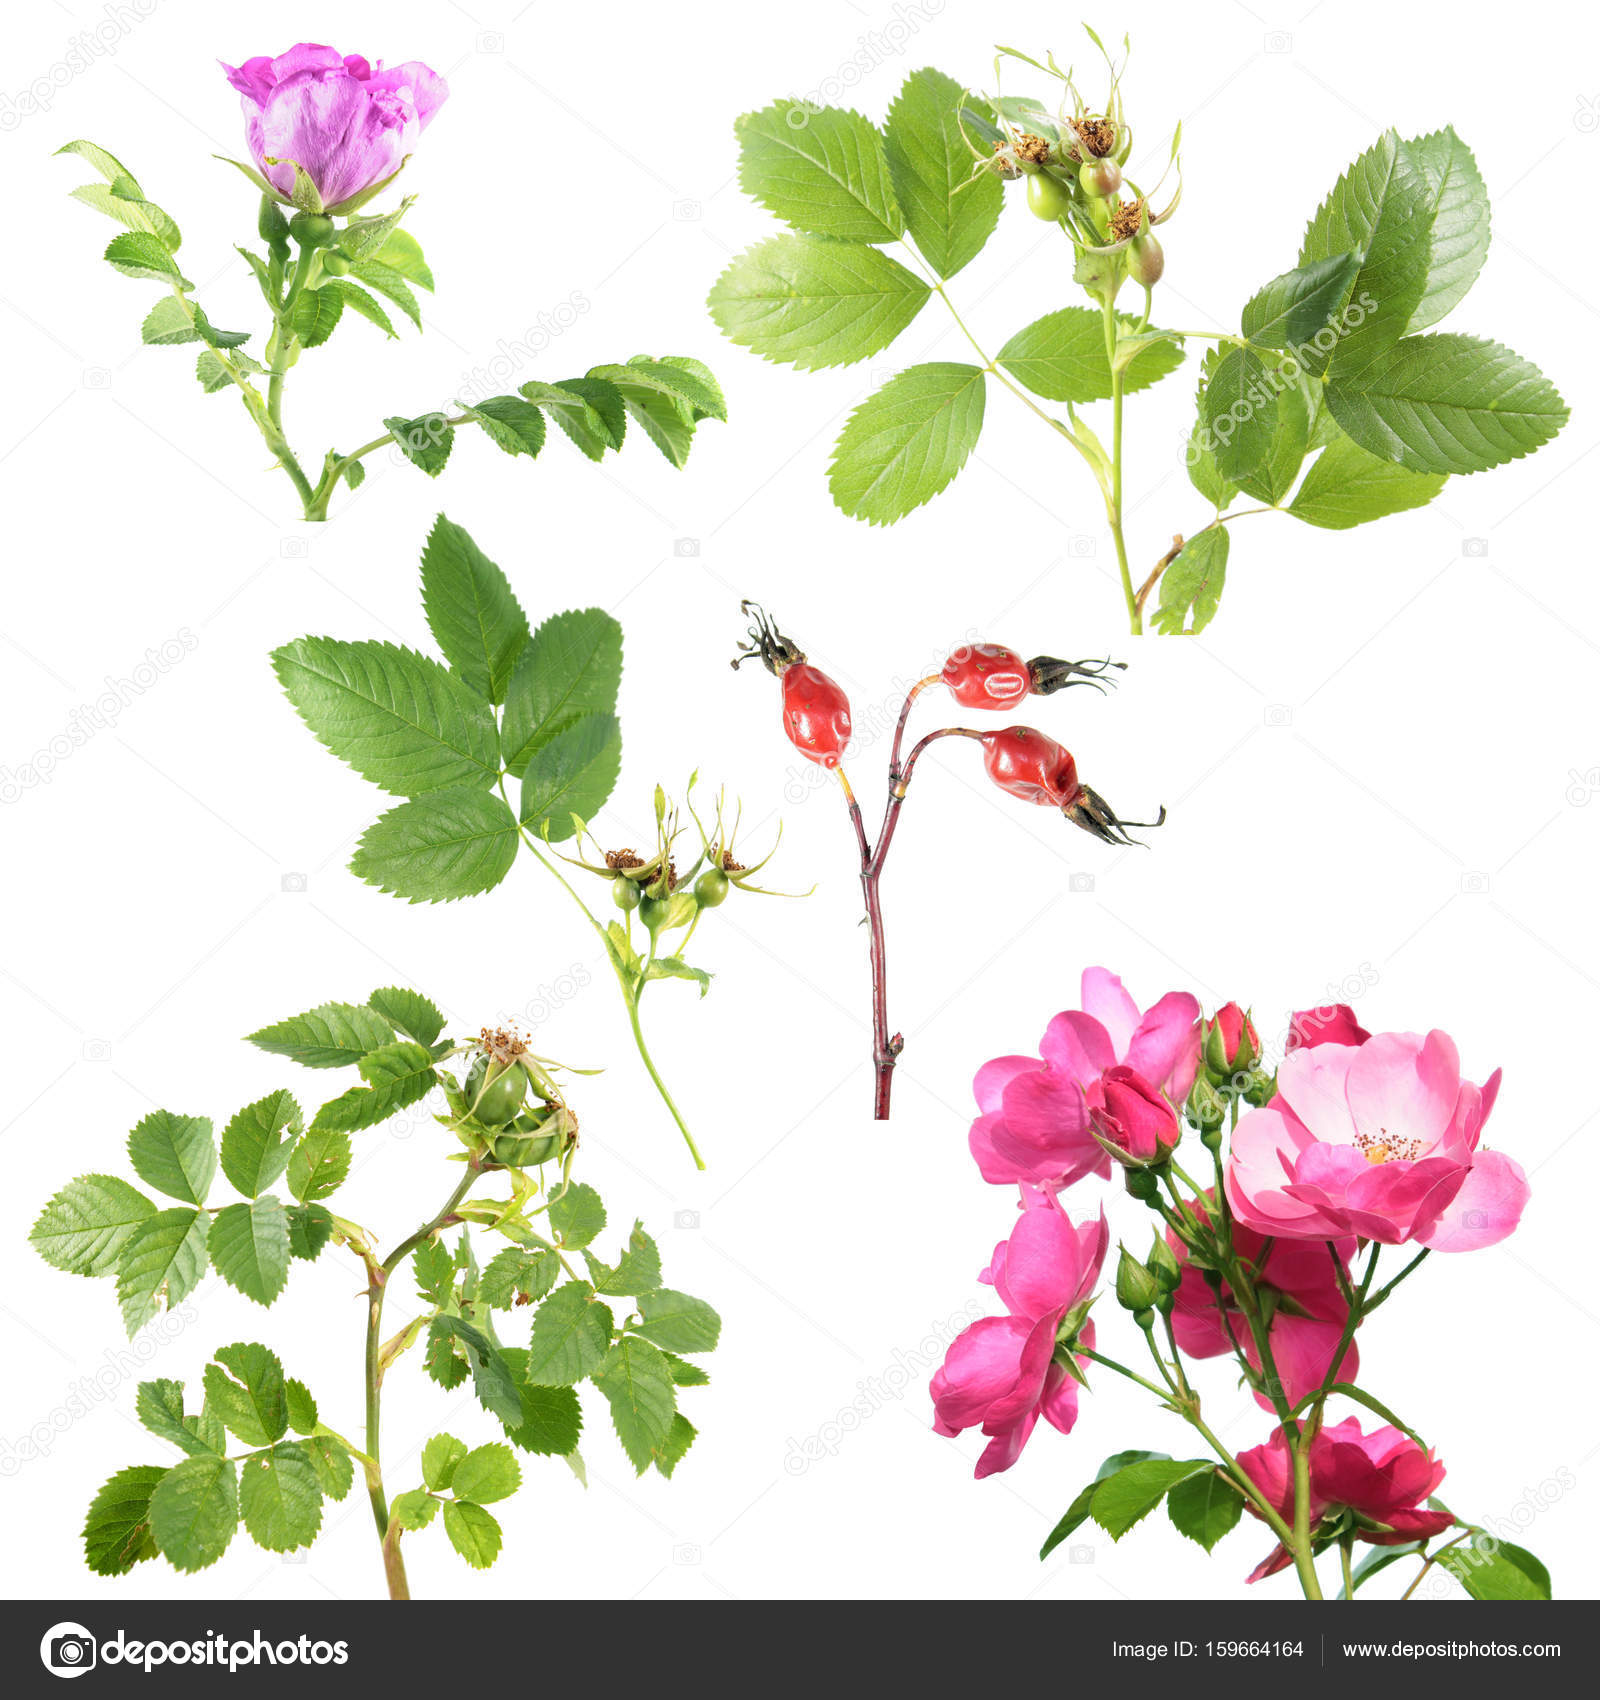 Different types of rose with flowers and rose hips isolated on white different types of rose with flowers and rose hips isolated on white background branch of rose with green leaves and rose hips photo by kazakovmaksim mightylinksfo